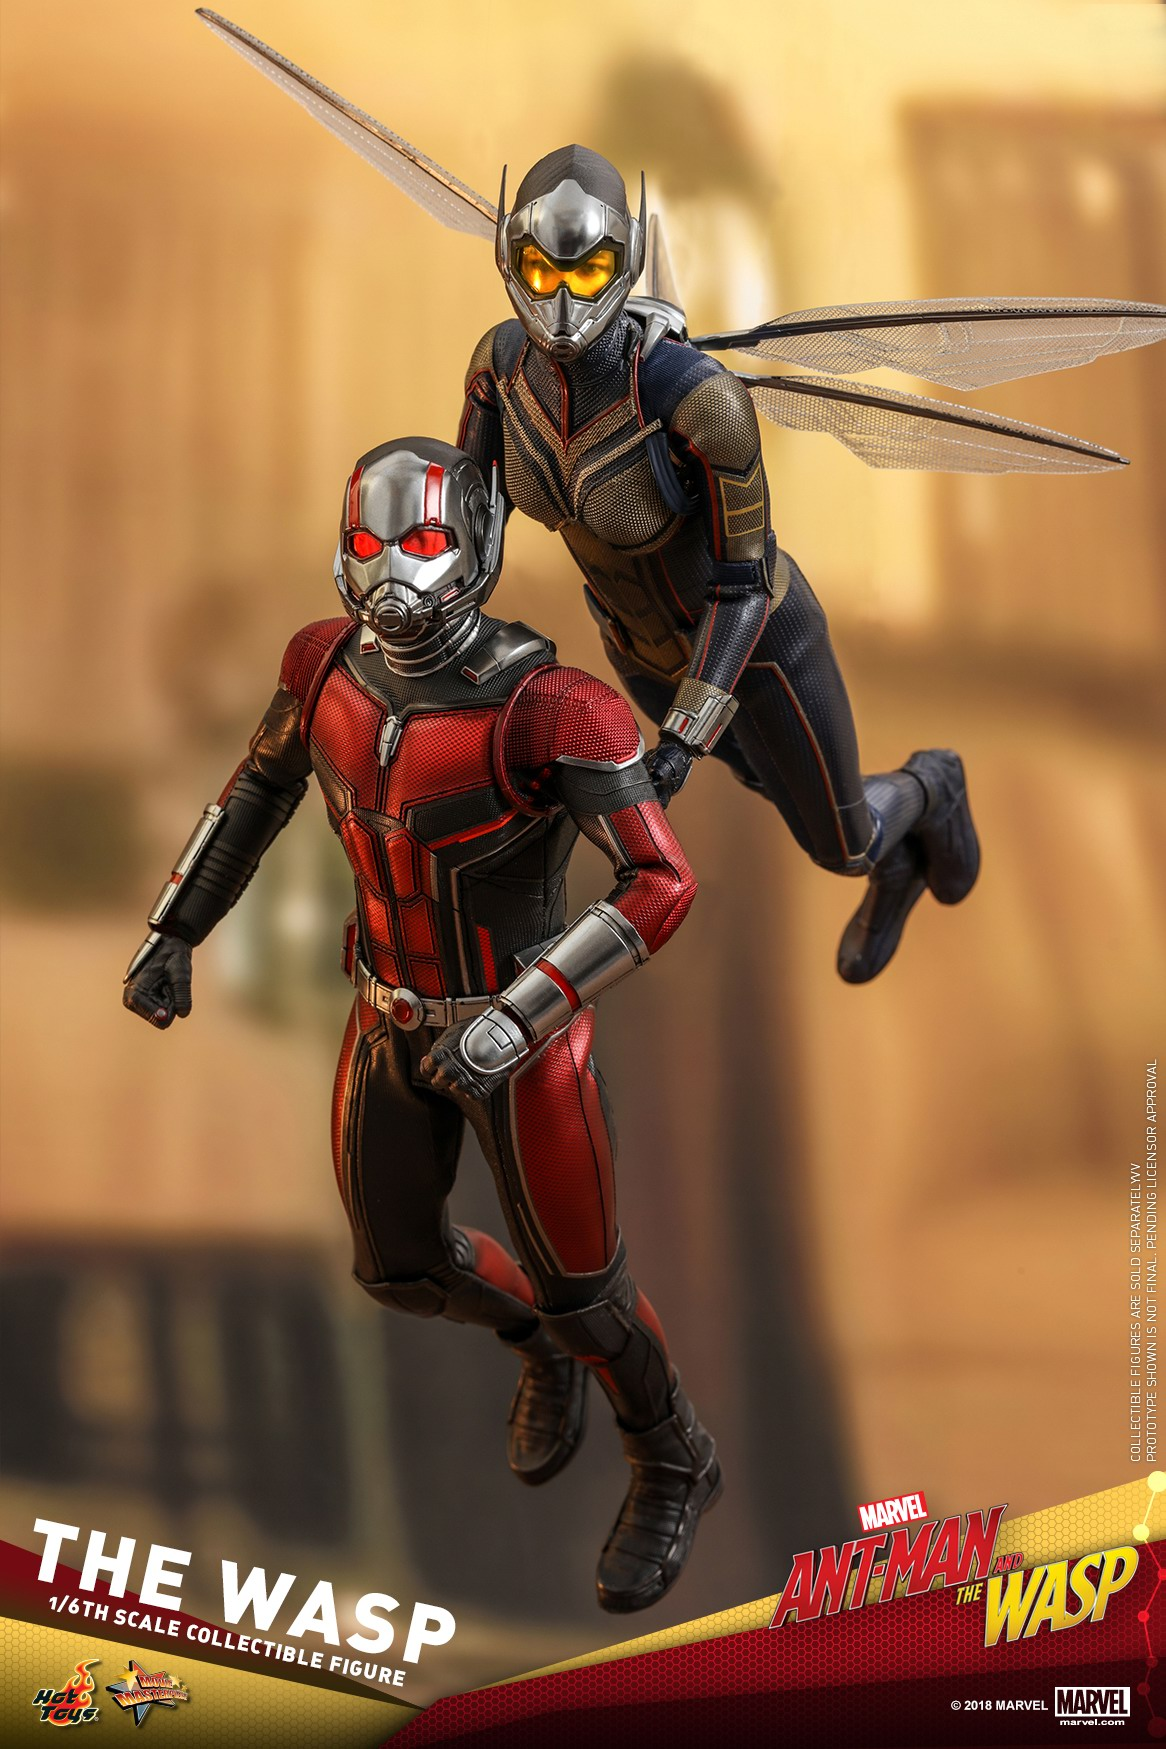 Hot-Toys-Ant-Man-and-The-Wasp-The-Wasp-Collectible-Figure_PR27.jpg